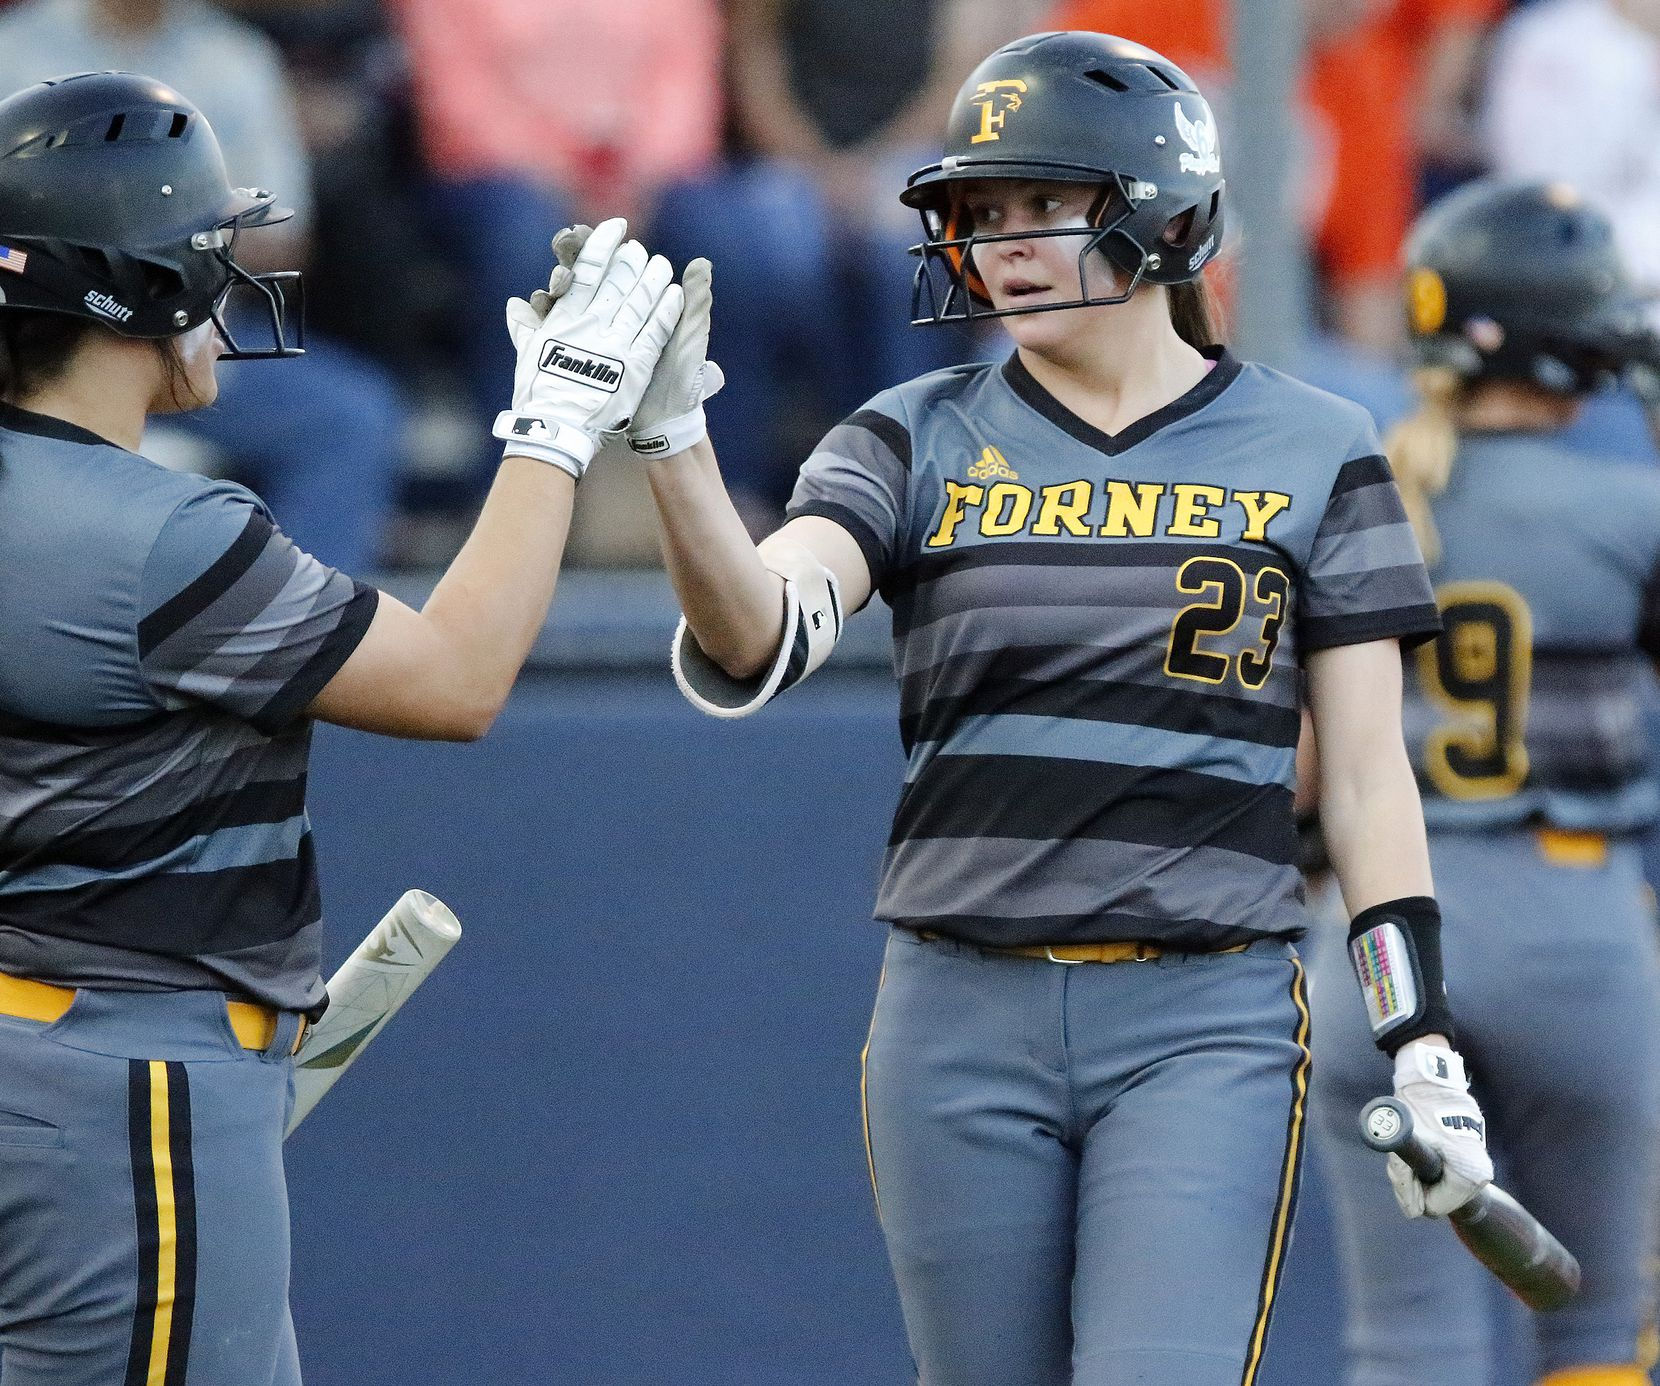 Forney shortstop Caleigh Cross (23) is congratulated by Trinity Cannon (left) after Cross scored in the third inning as McKinney North High School played Forney High School in the second game of a three game series to determine the Class 5A Region II semifinals on Friday, May 17, 2019.  (Stewart F. House/Special Contributor)